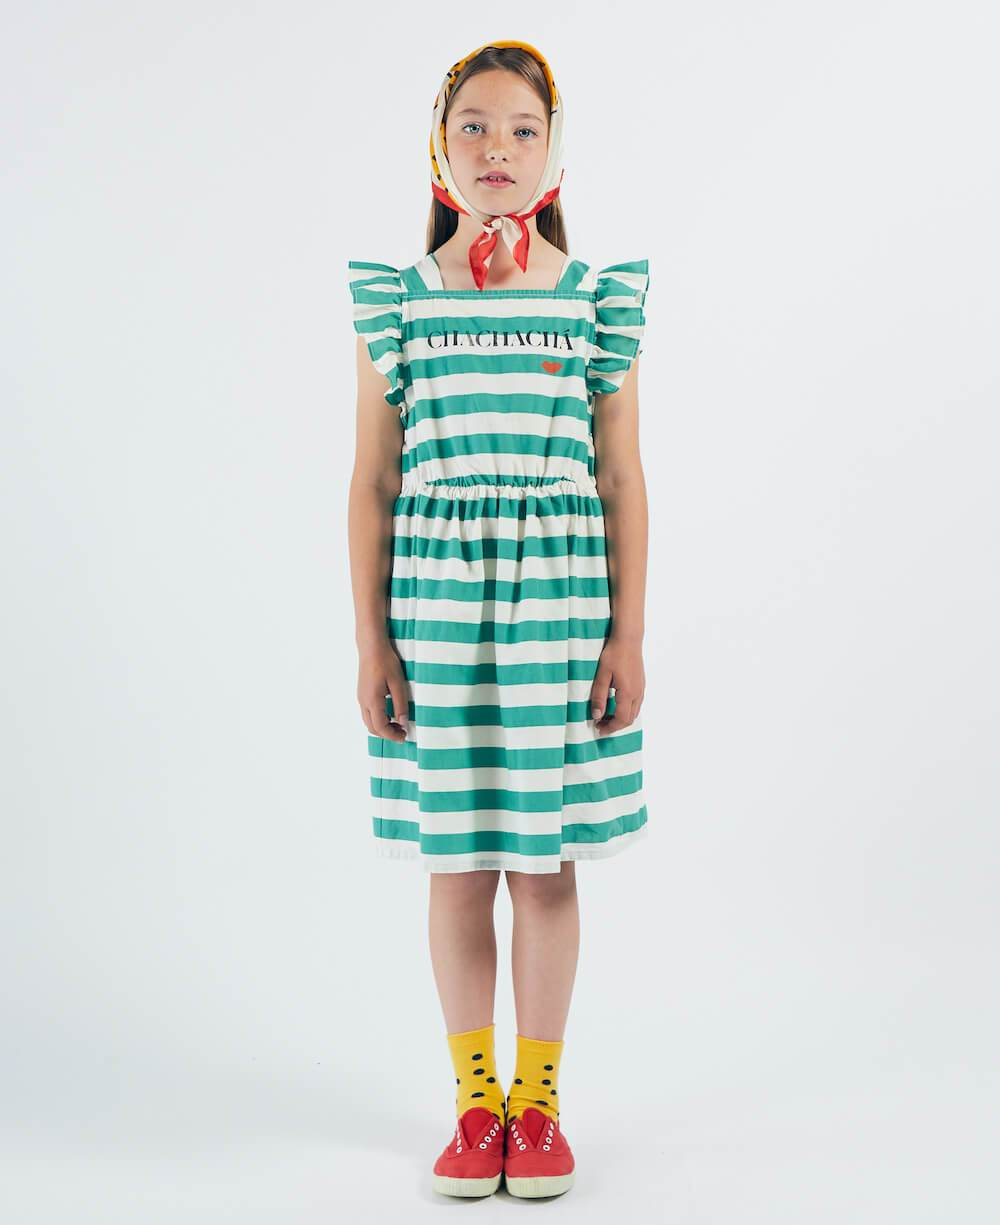 Bobo Choses Chachacha Kiss Woven Ruffle Dress | Tiny People